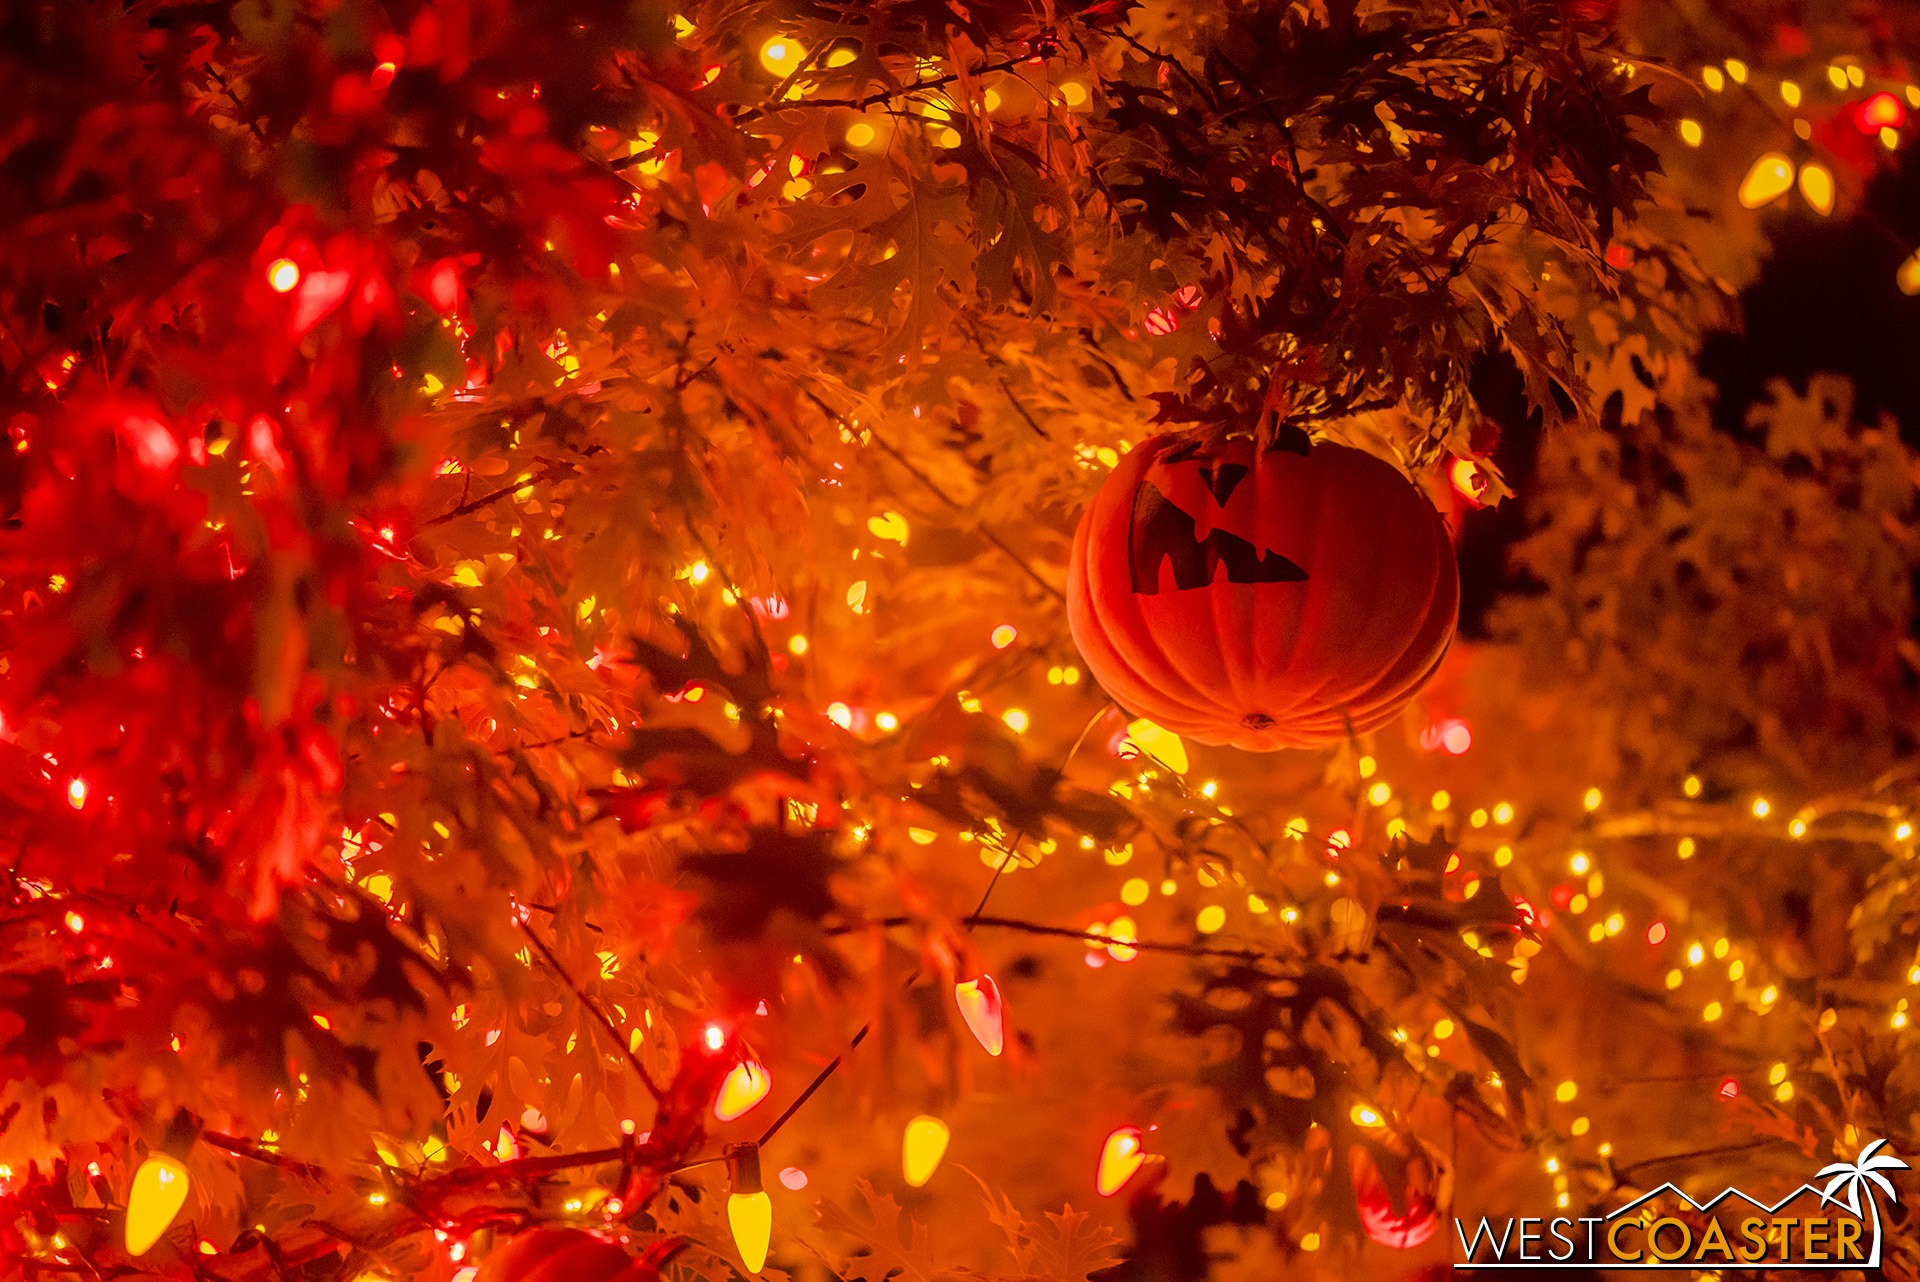 If there can be a Christmas tree, though, why not a Halloween tree?